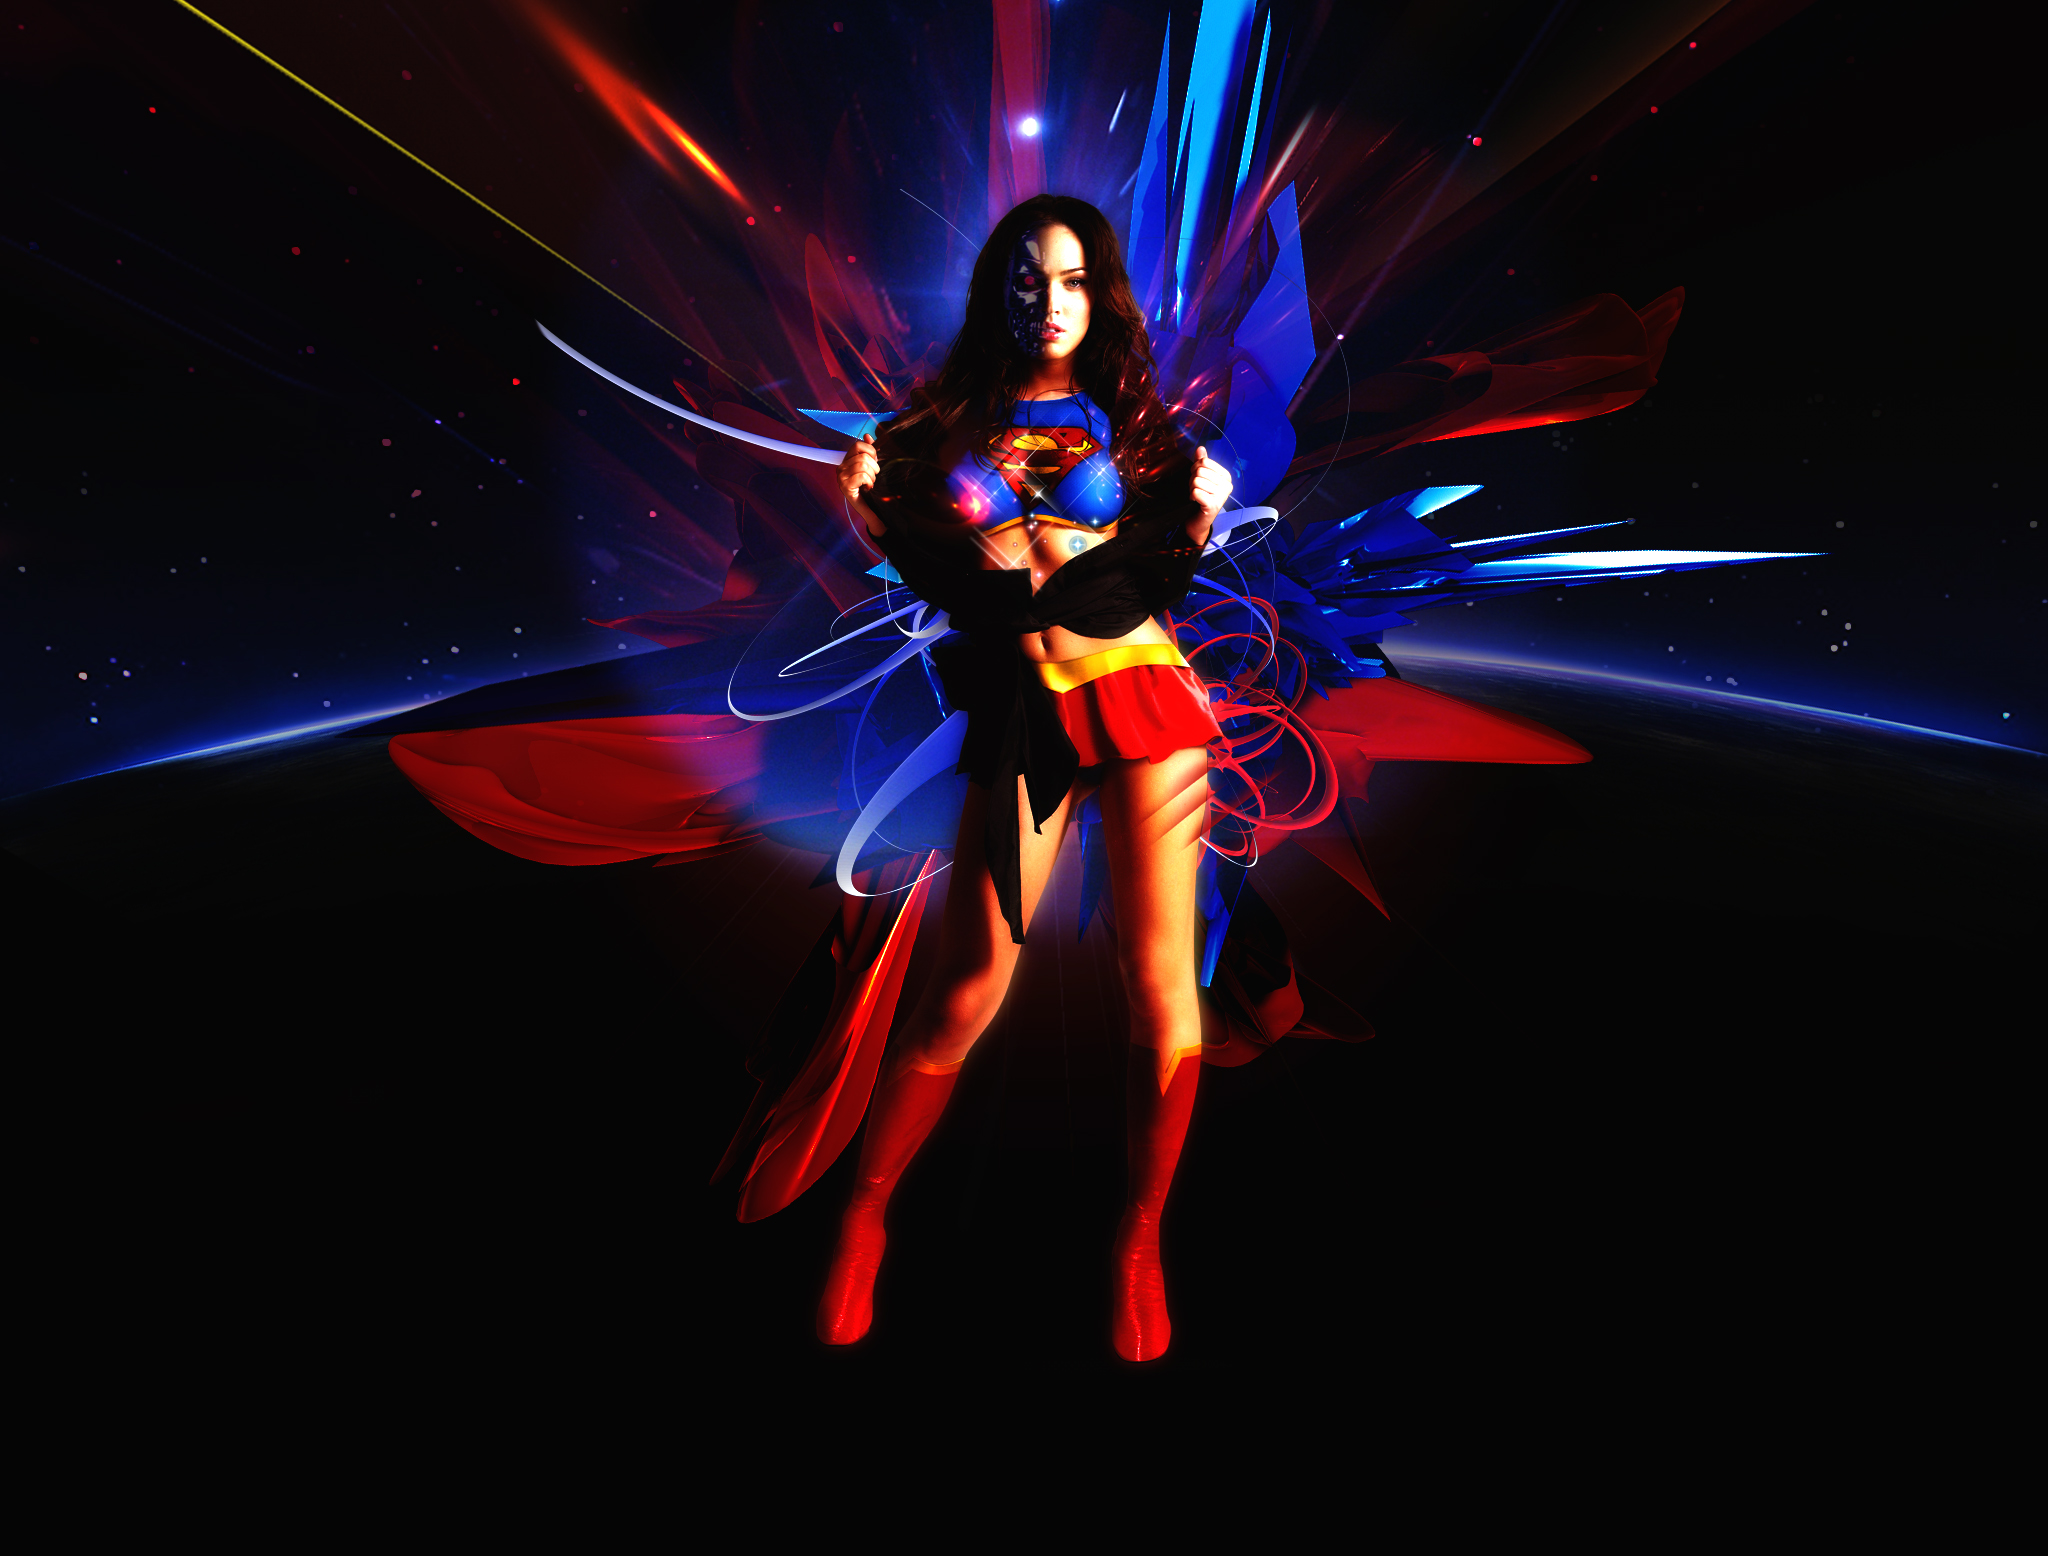 Megan Fox Superman Body Paint 61228 Enews